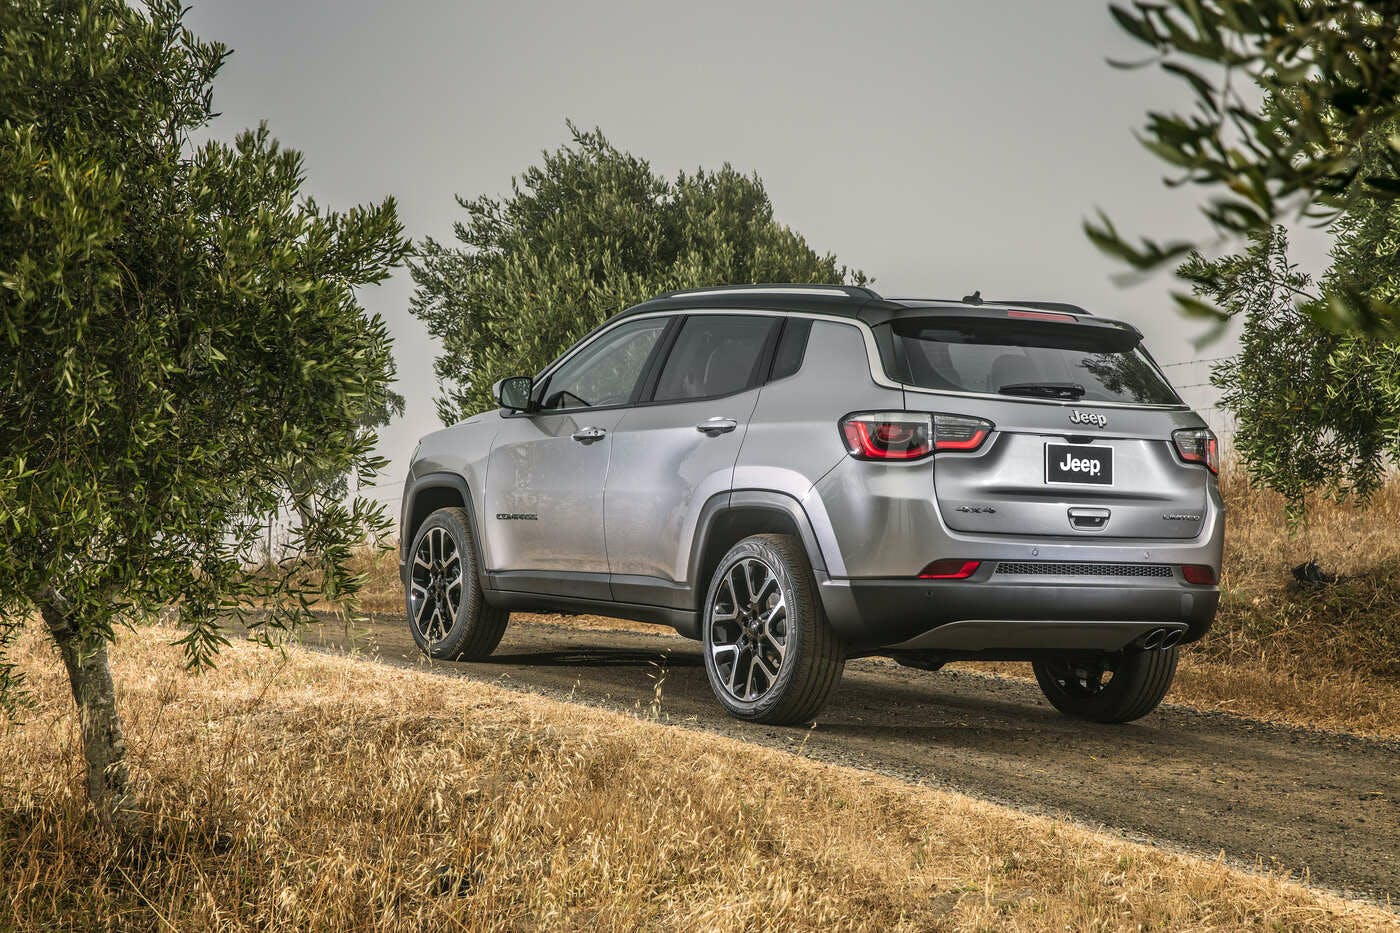 11 Jeep Compass Hd Wallpaper For Mobile Images Picture Idokeren